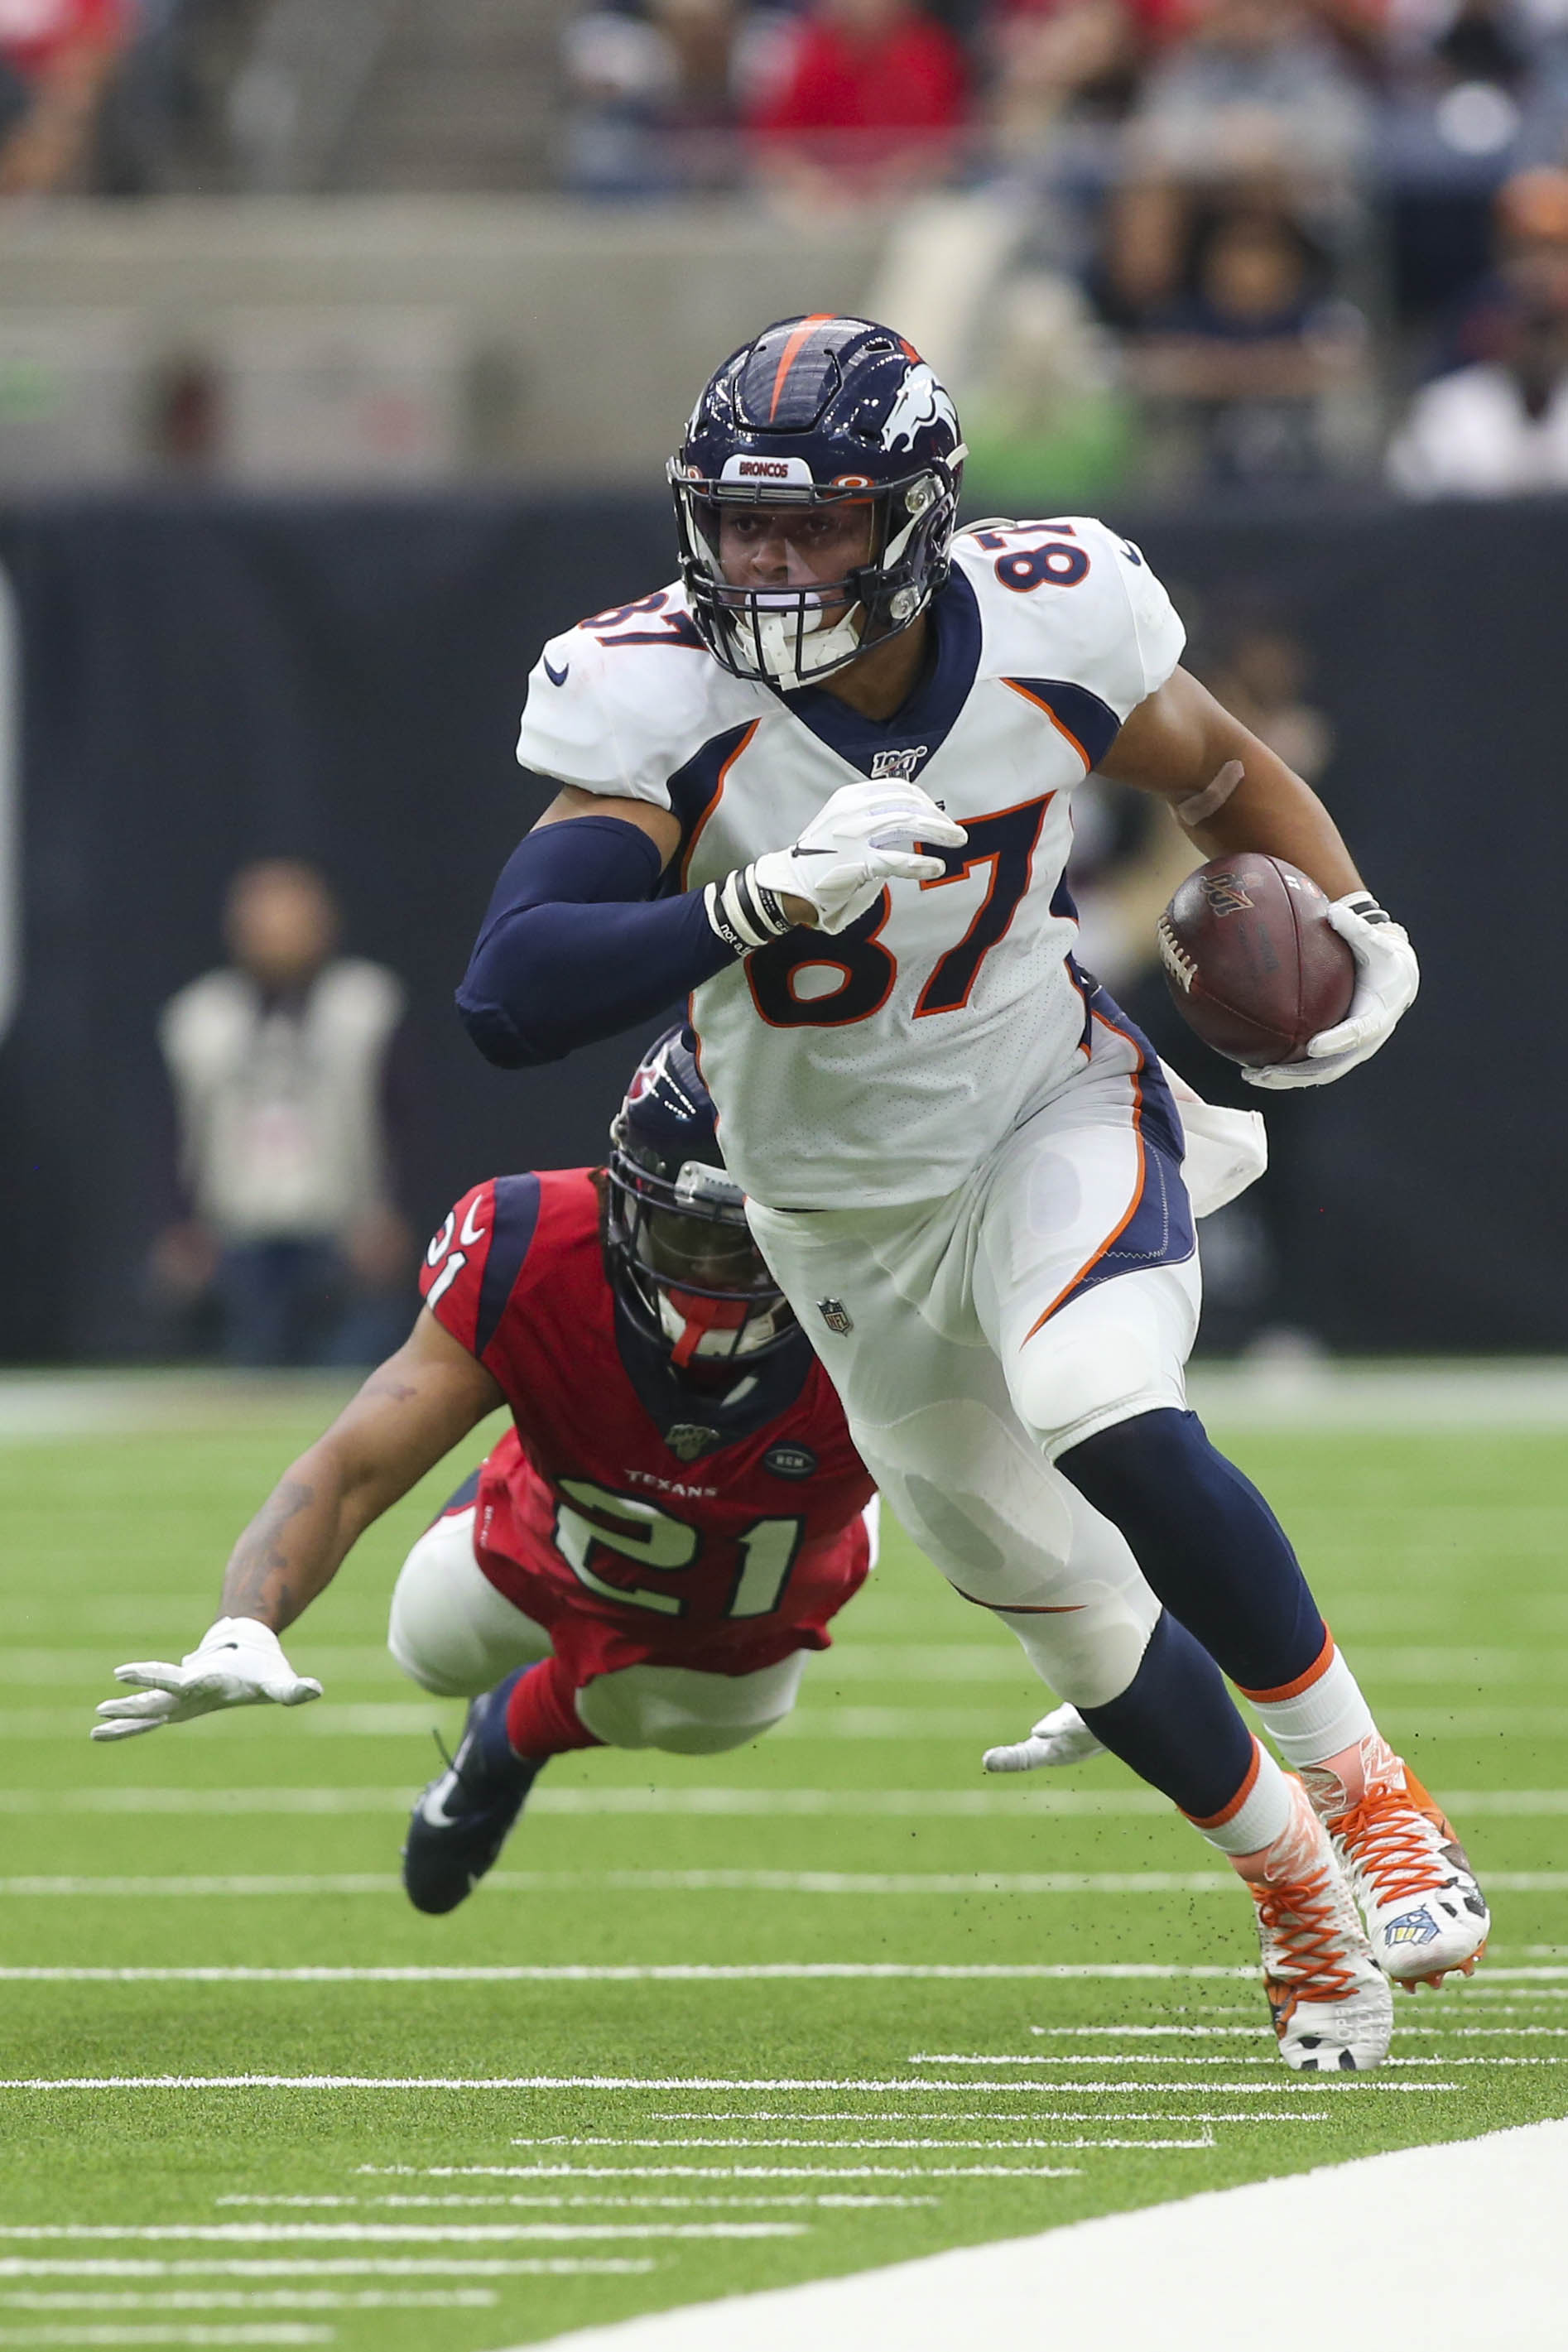 Denver Broncos tight end Noah Fant runs after a reception while Houston Texans cornerback Bradley Roby fails to make the tackle at NRG Stadium.